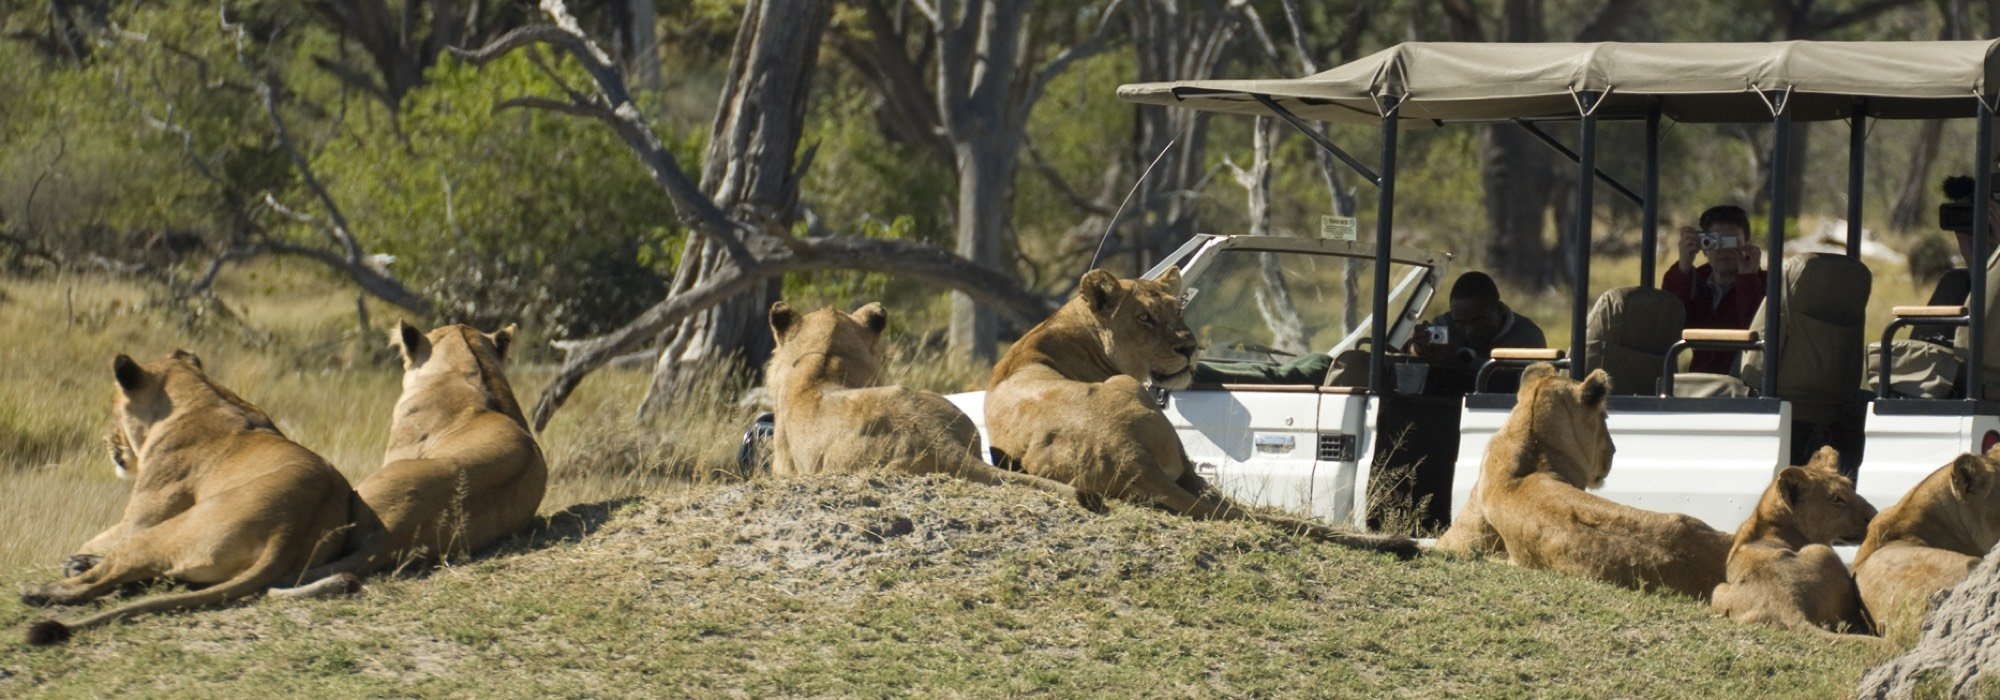 Lions on safari in Botswana